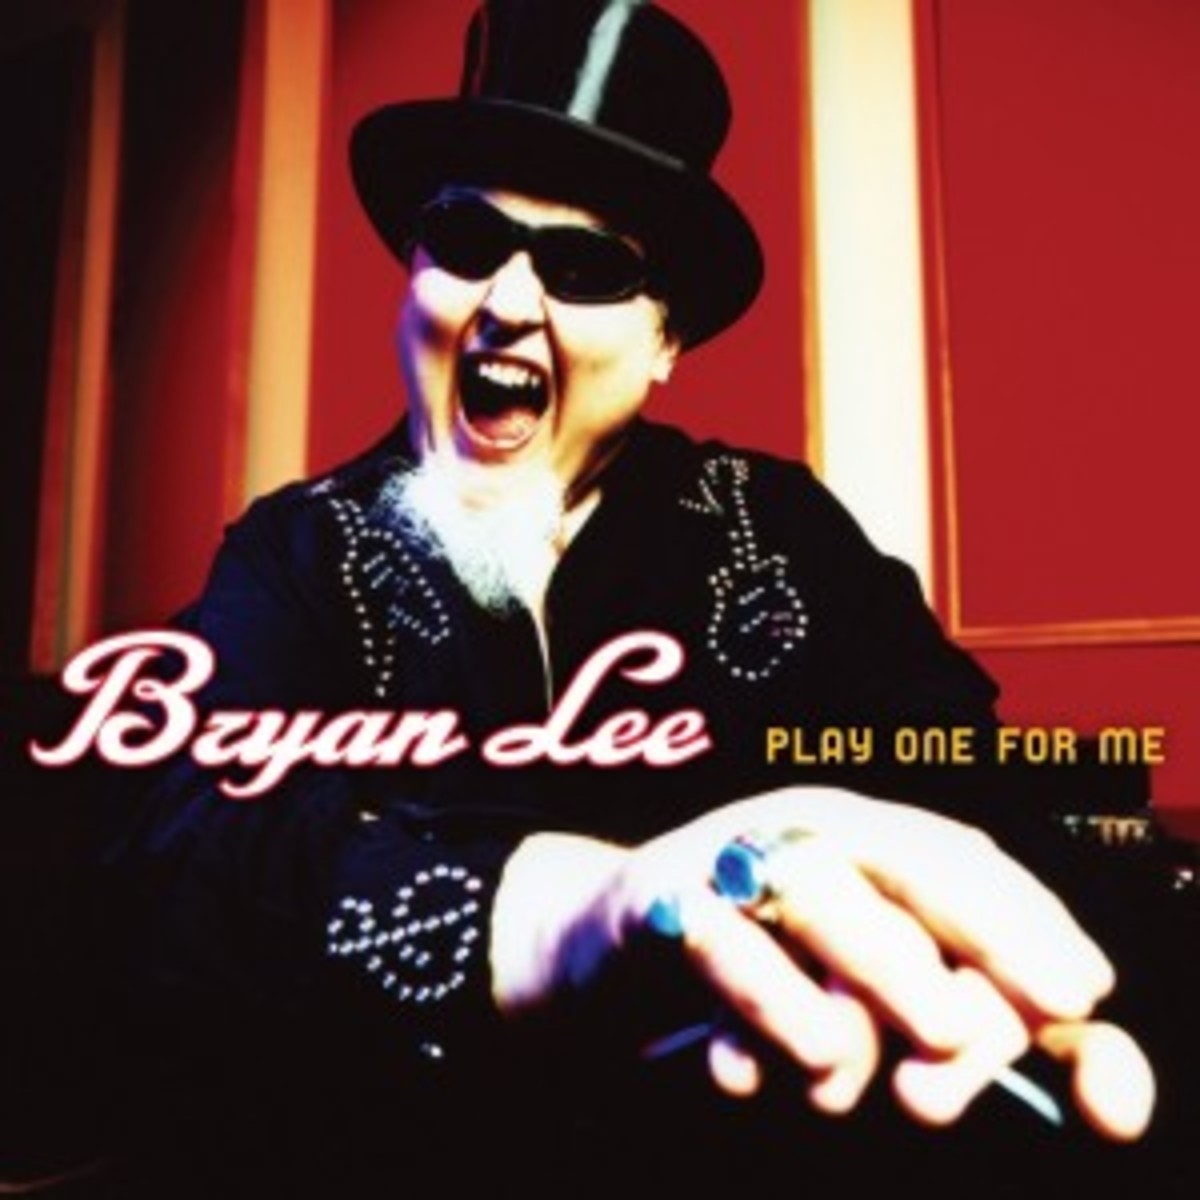 Bryan Lee - Play One For Me - hi-res cover